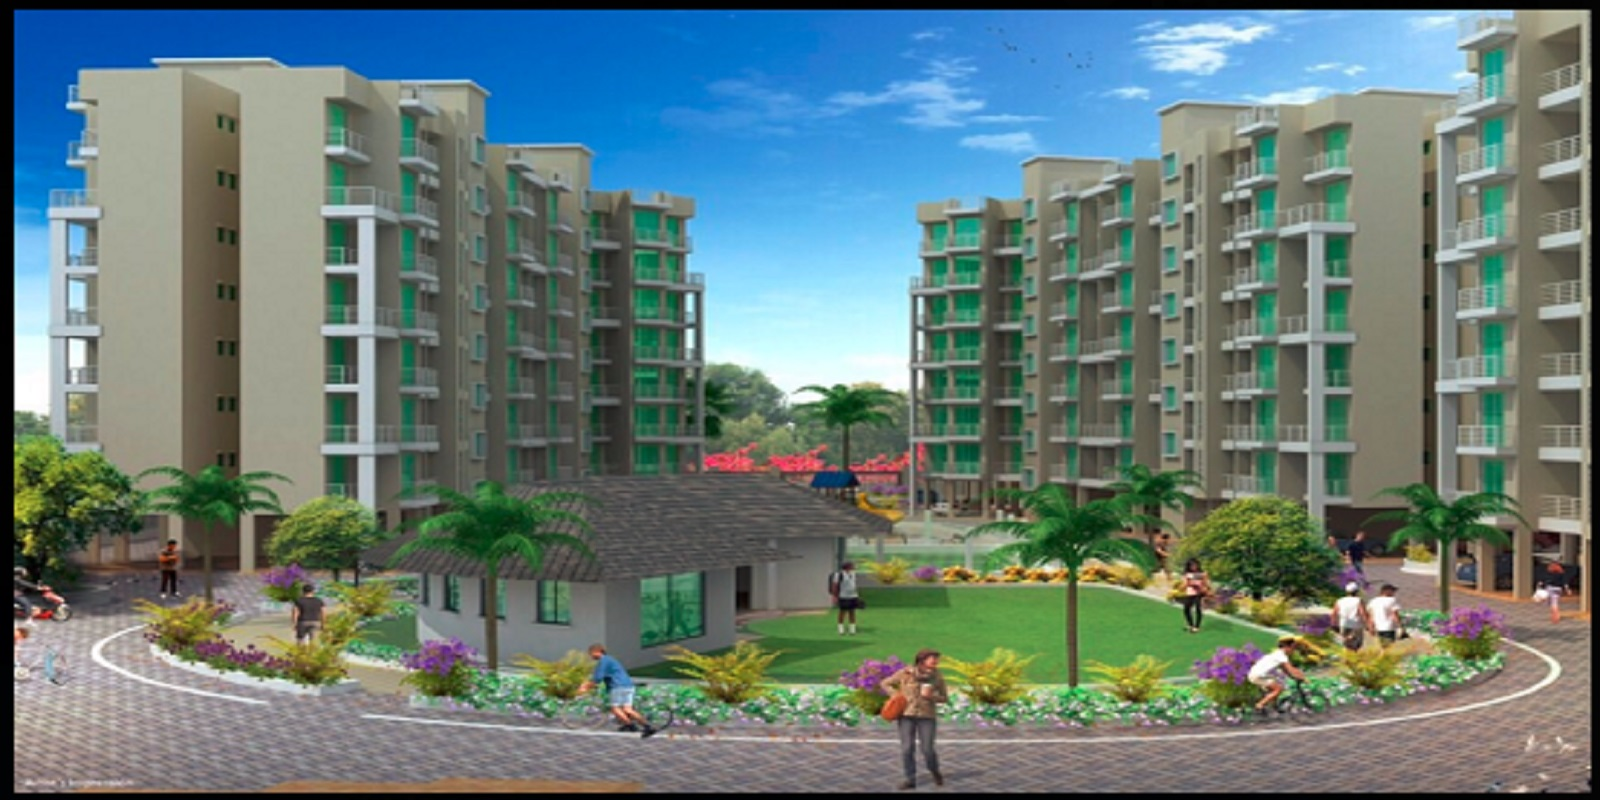 akshar emperia garden amenities features8